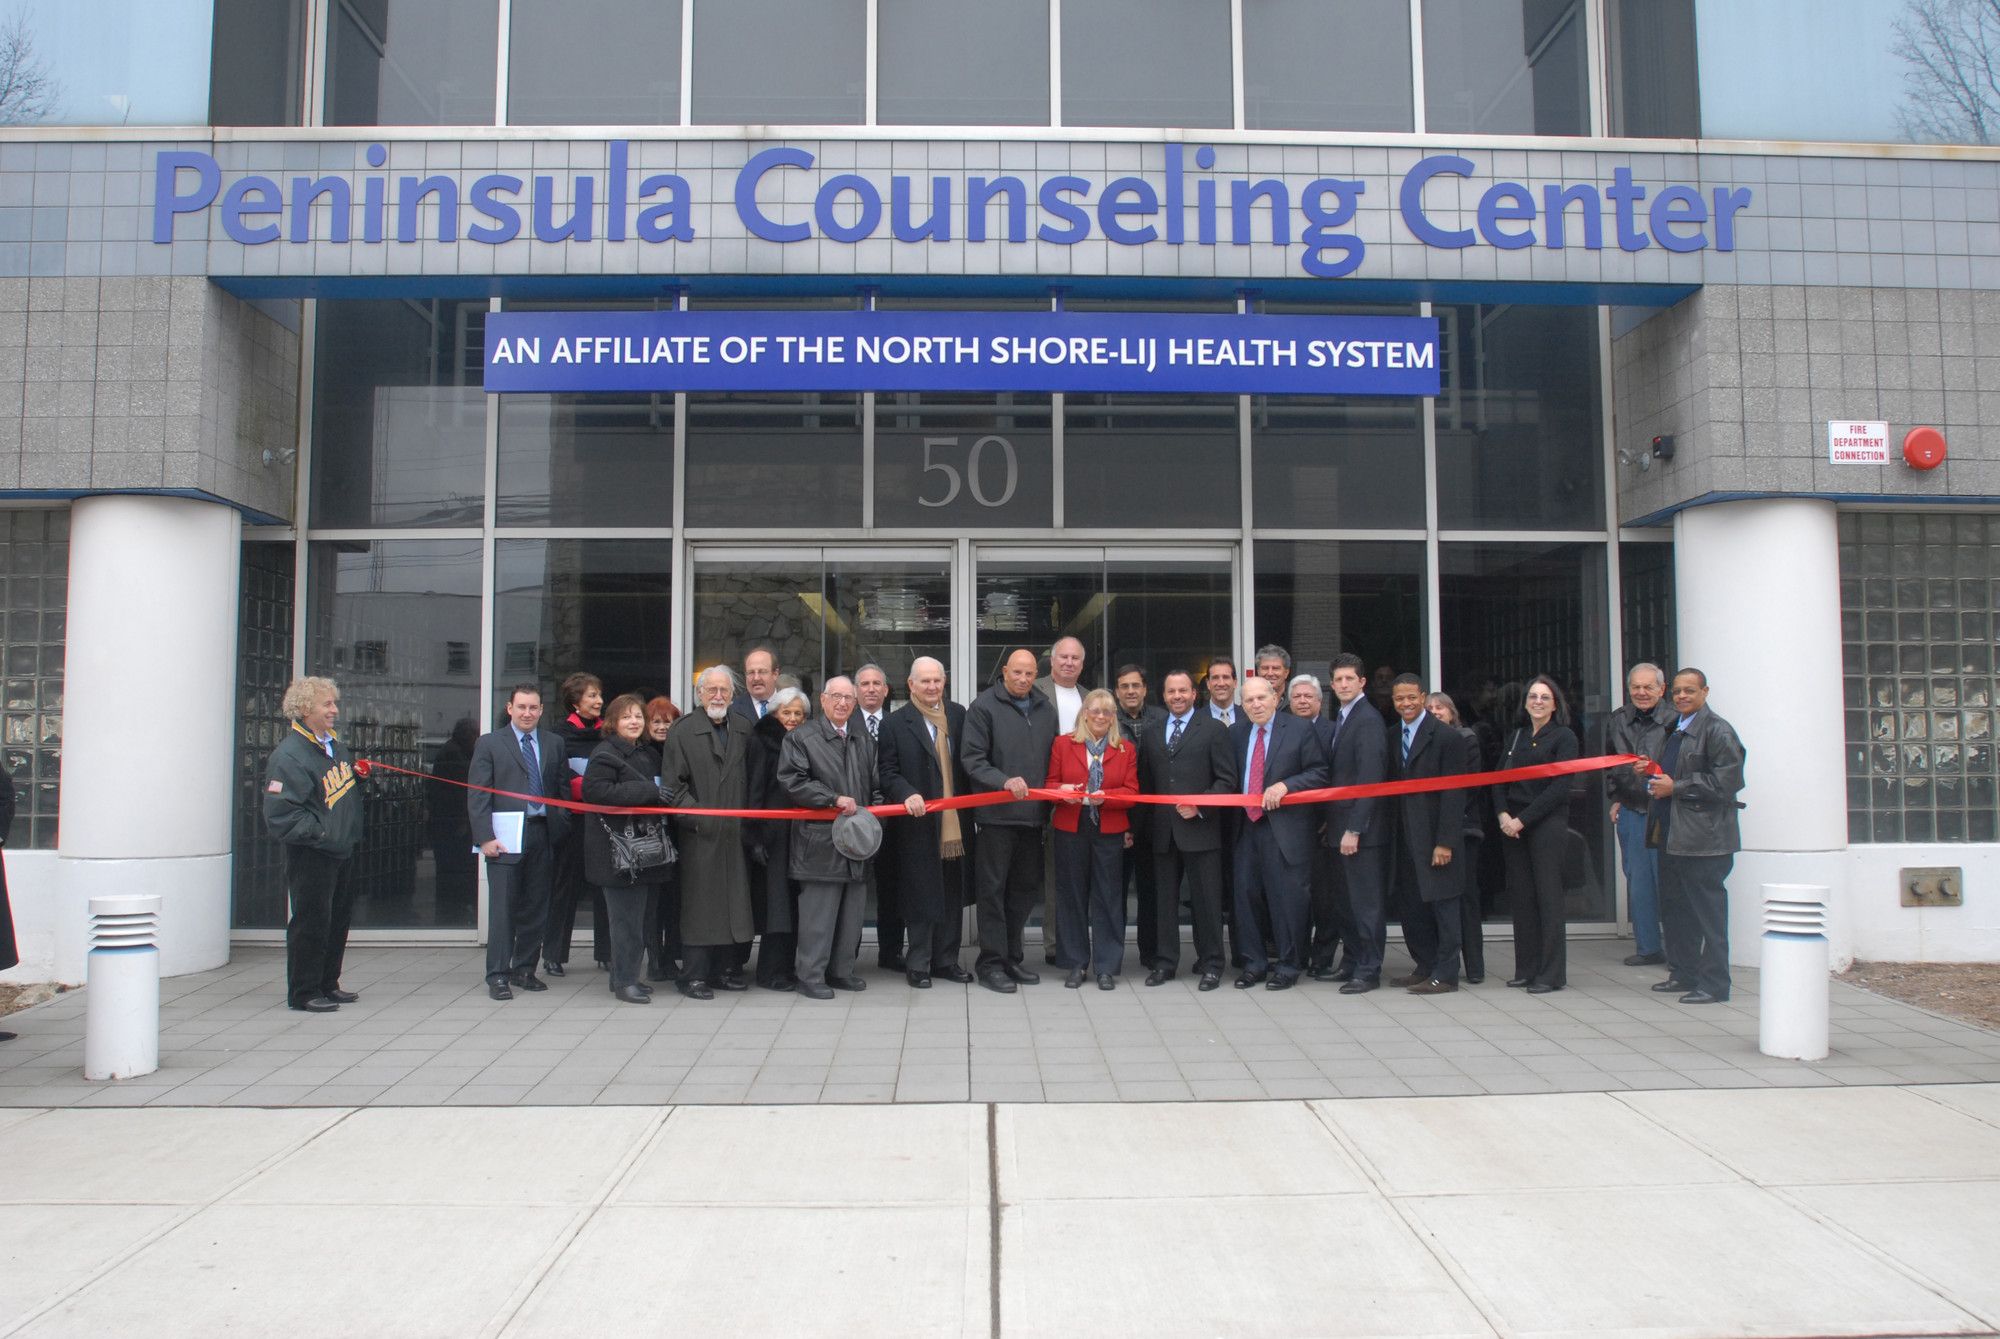 A ribbon-cutting ceremony was held on March 1, 2009 to celebrate the open of the Peninsula Counseling Center's new state-of-the-art headquarters in Valley Stream.